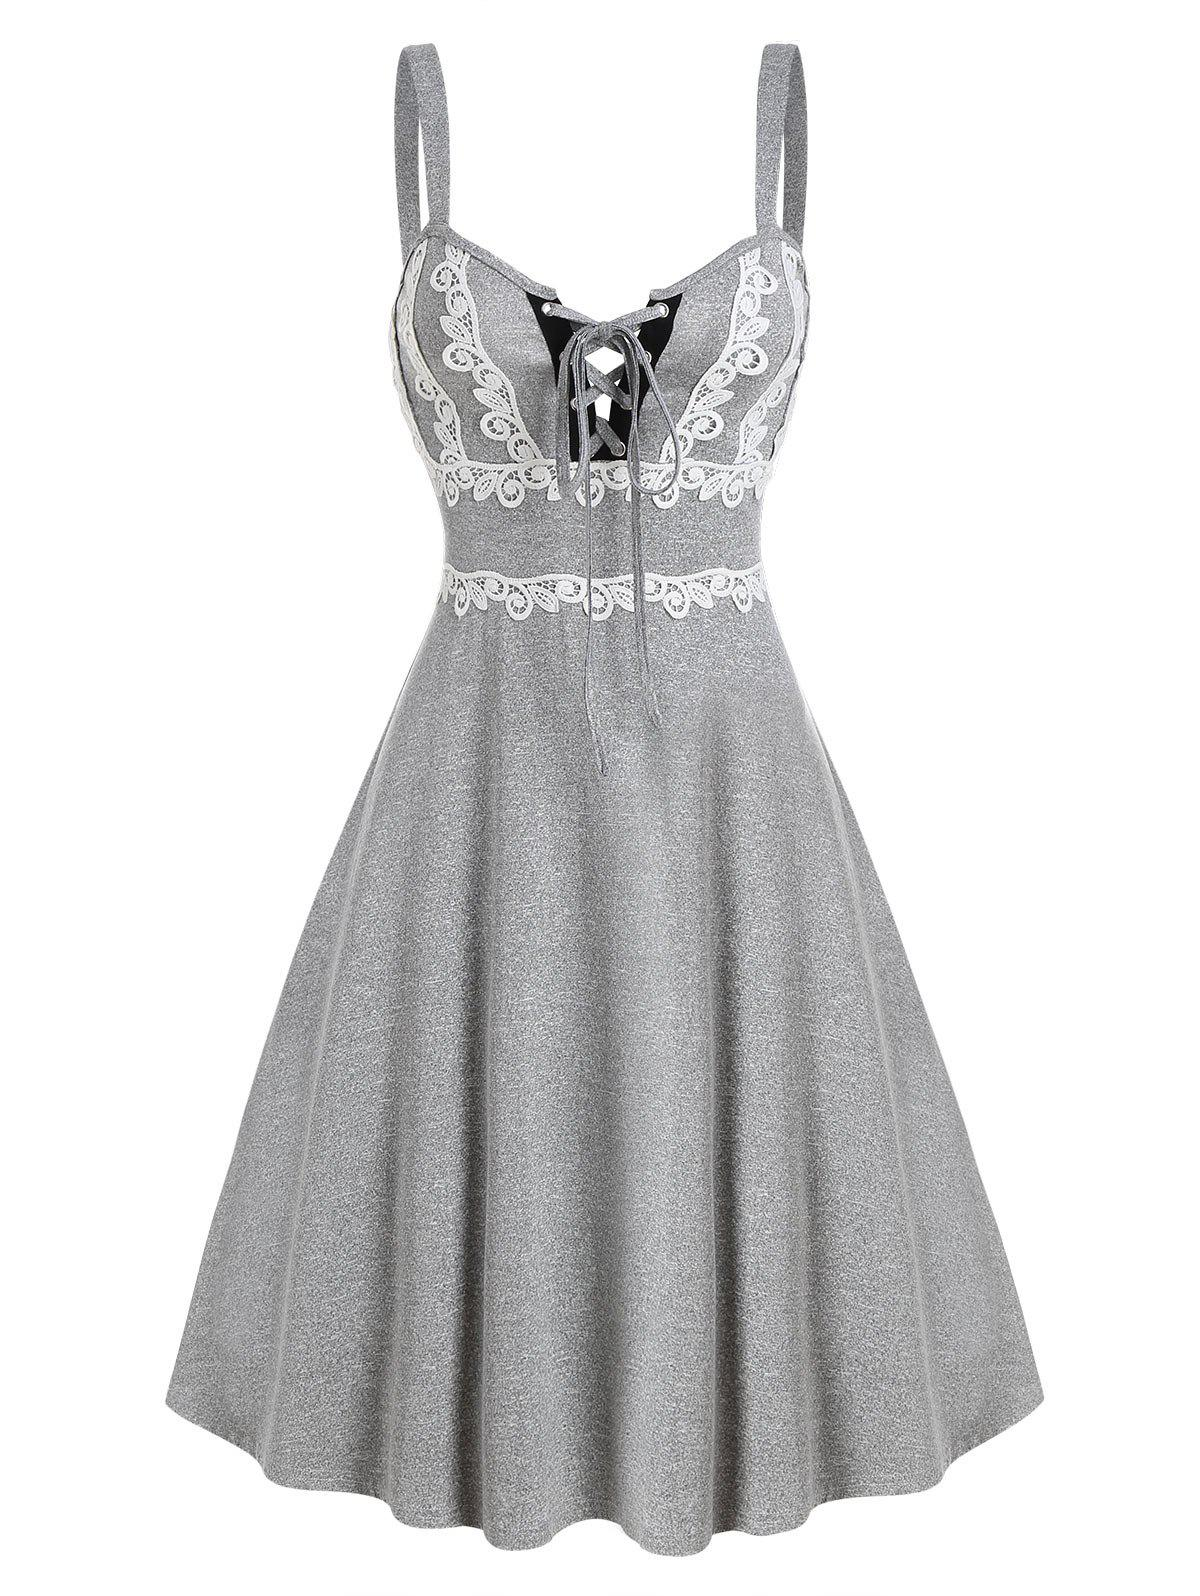 Lace Up Lace Insert Mini Cami Dress - LIGHT GRAY L